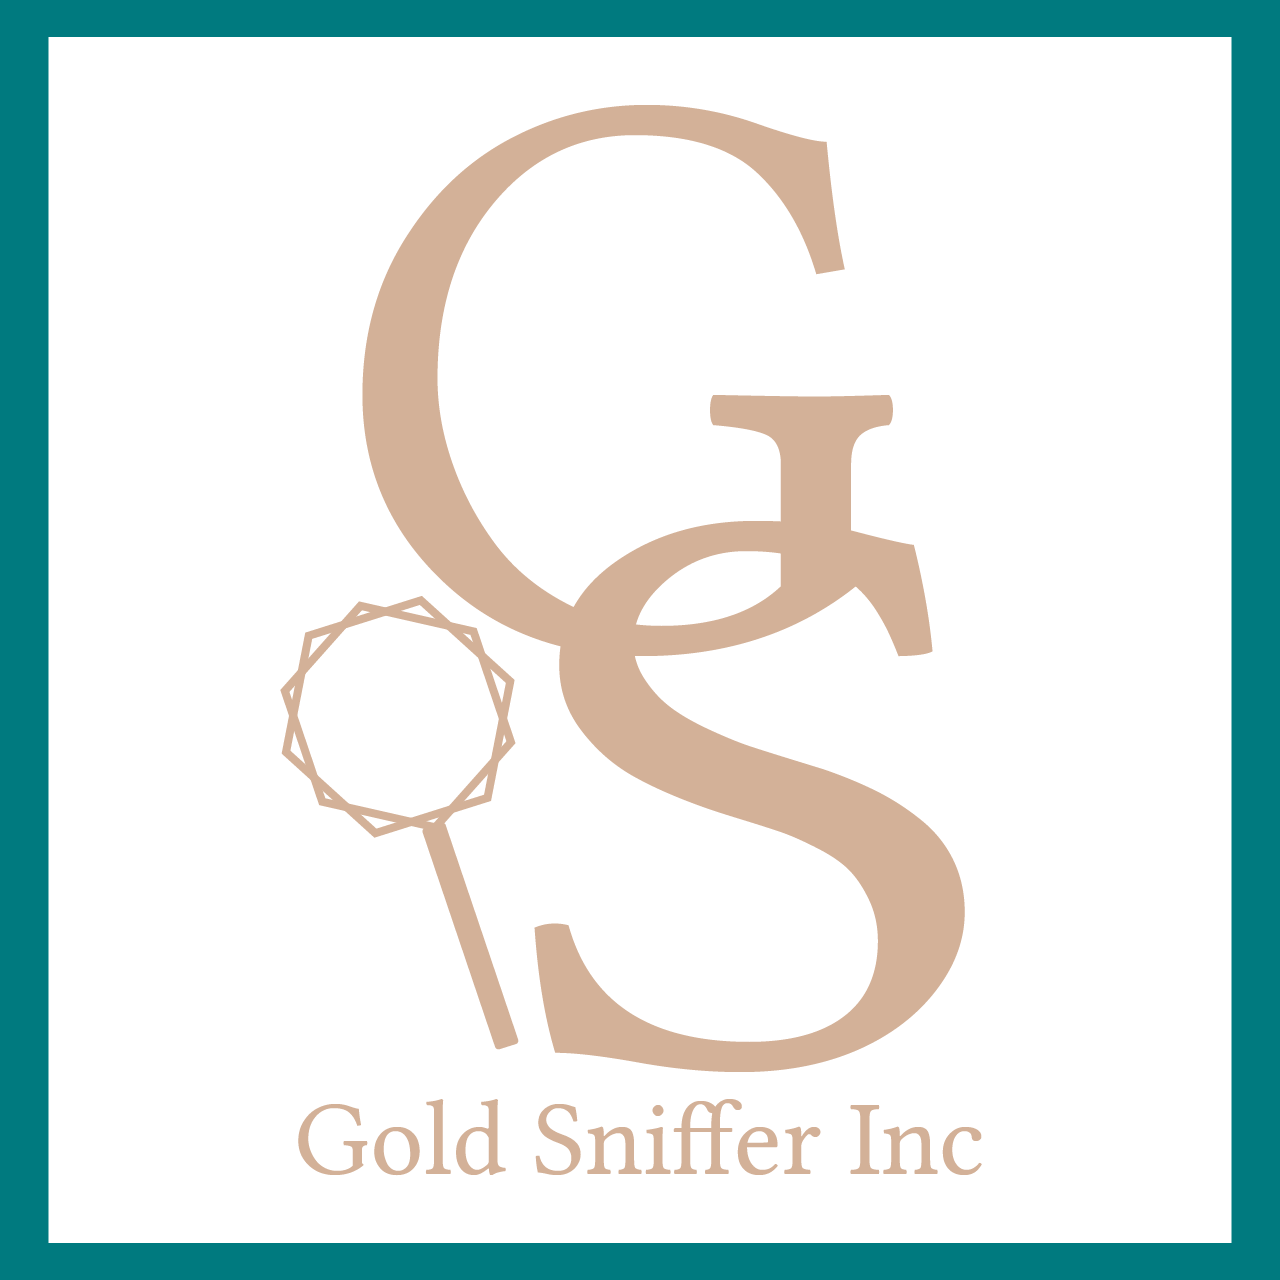 Gold Sniffer Inc.